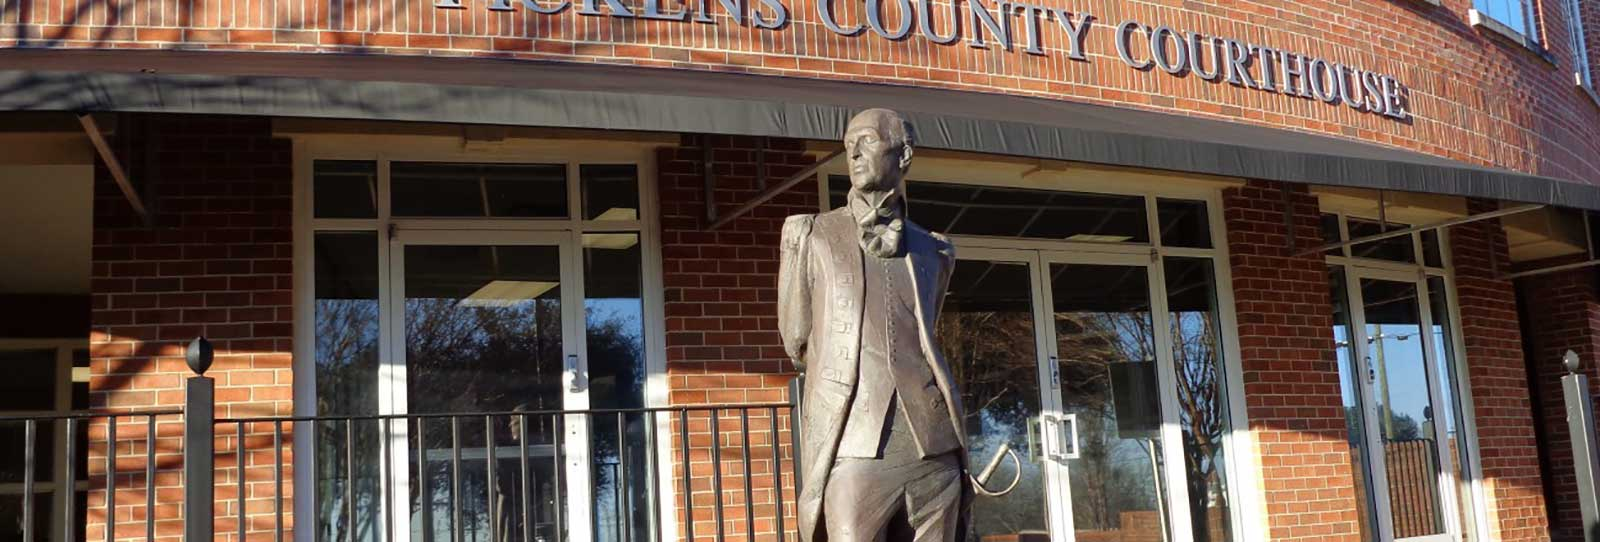 greenville-sc-personal-injury-attorney-lawyer-pickens-county-courthouse